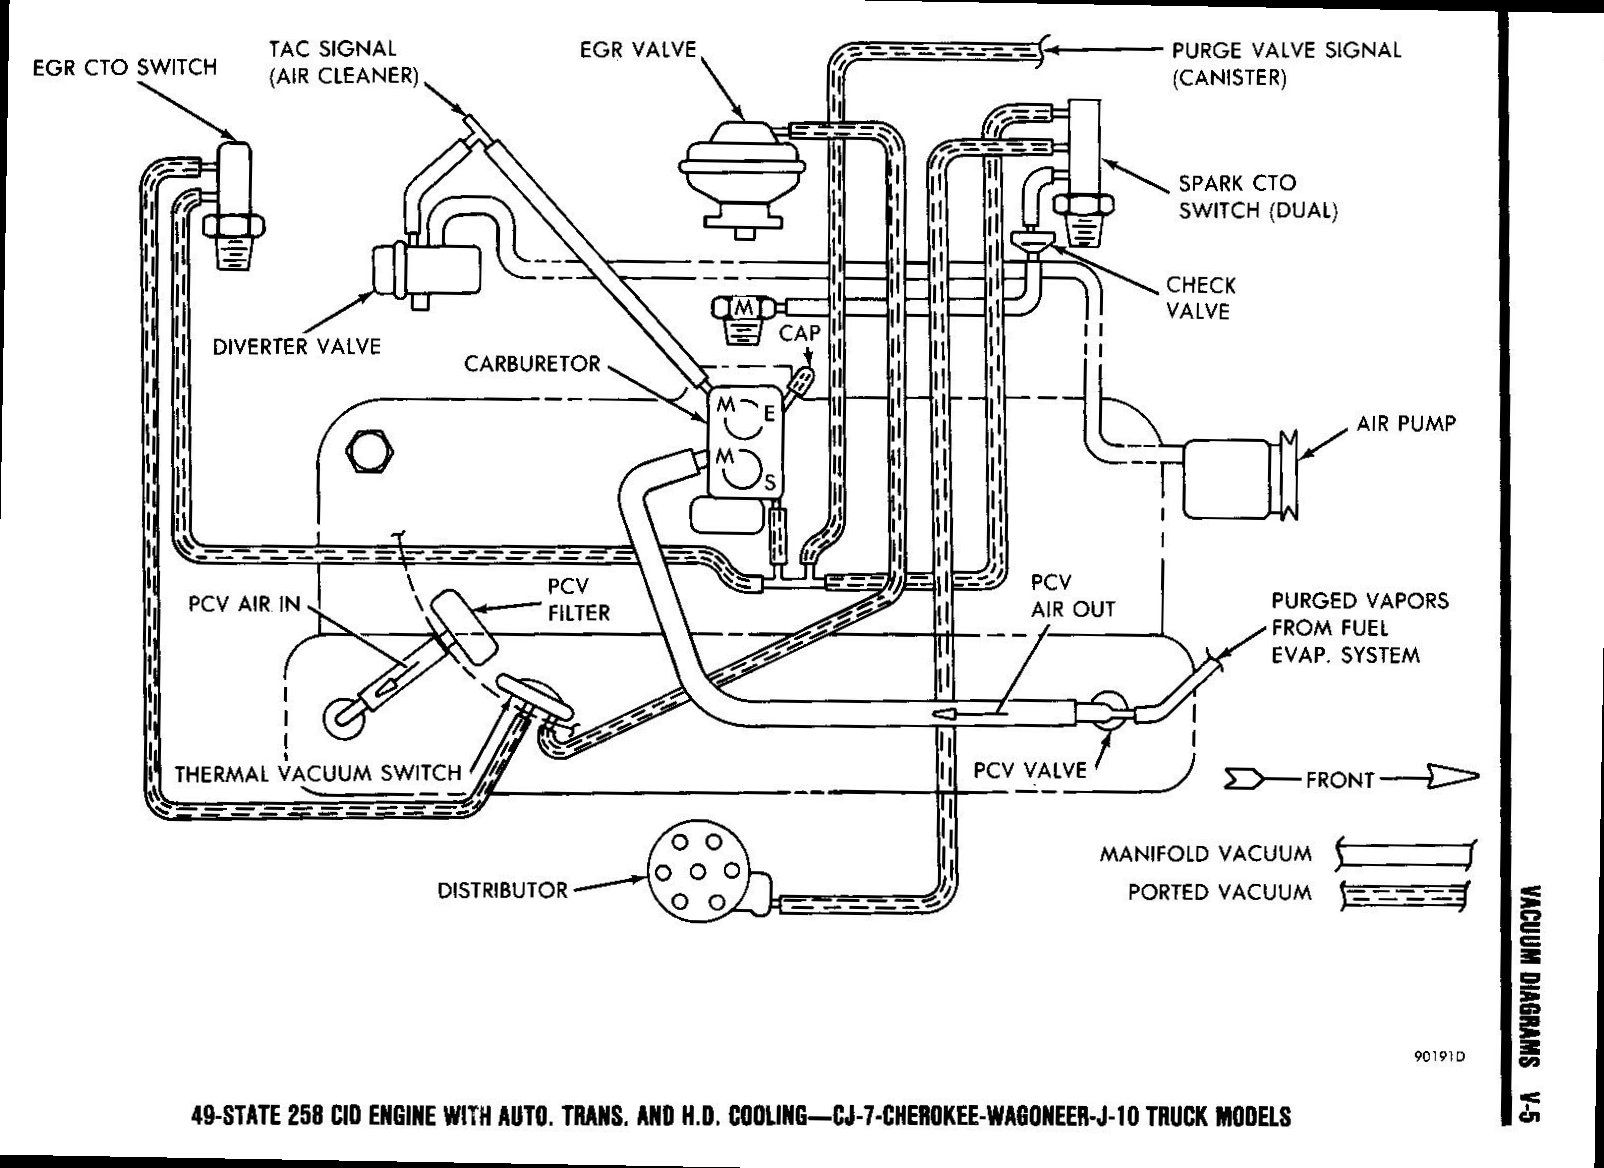 Wiring Diagram For 1976 And 1977 Cj5 Jeep